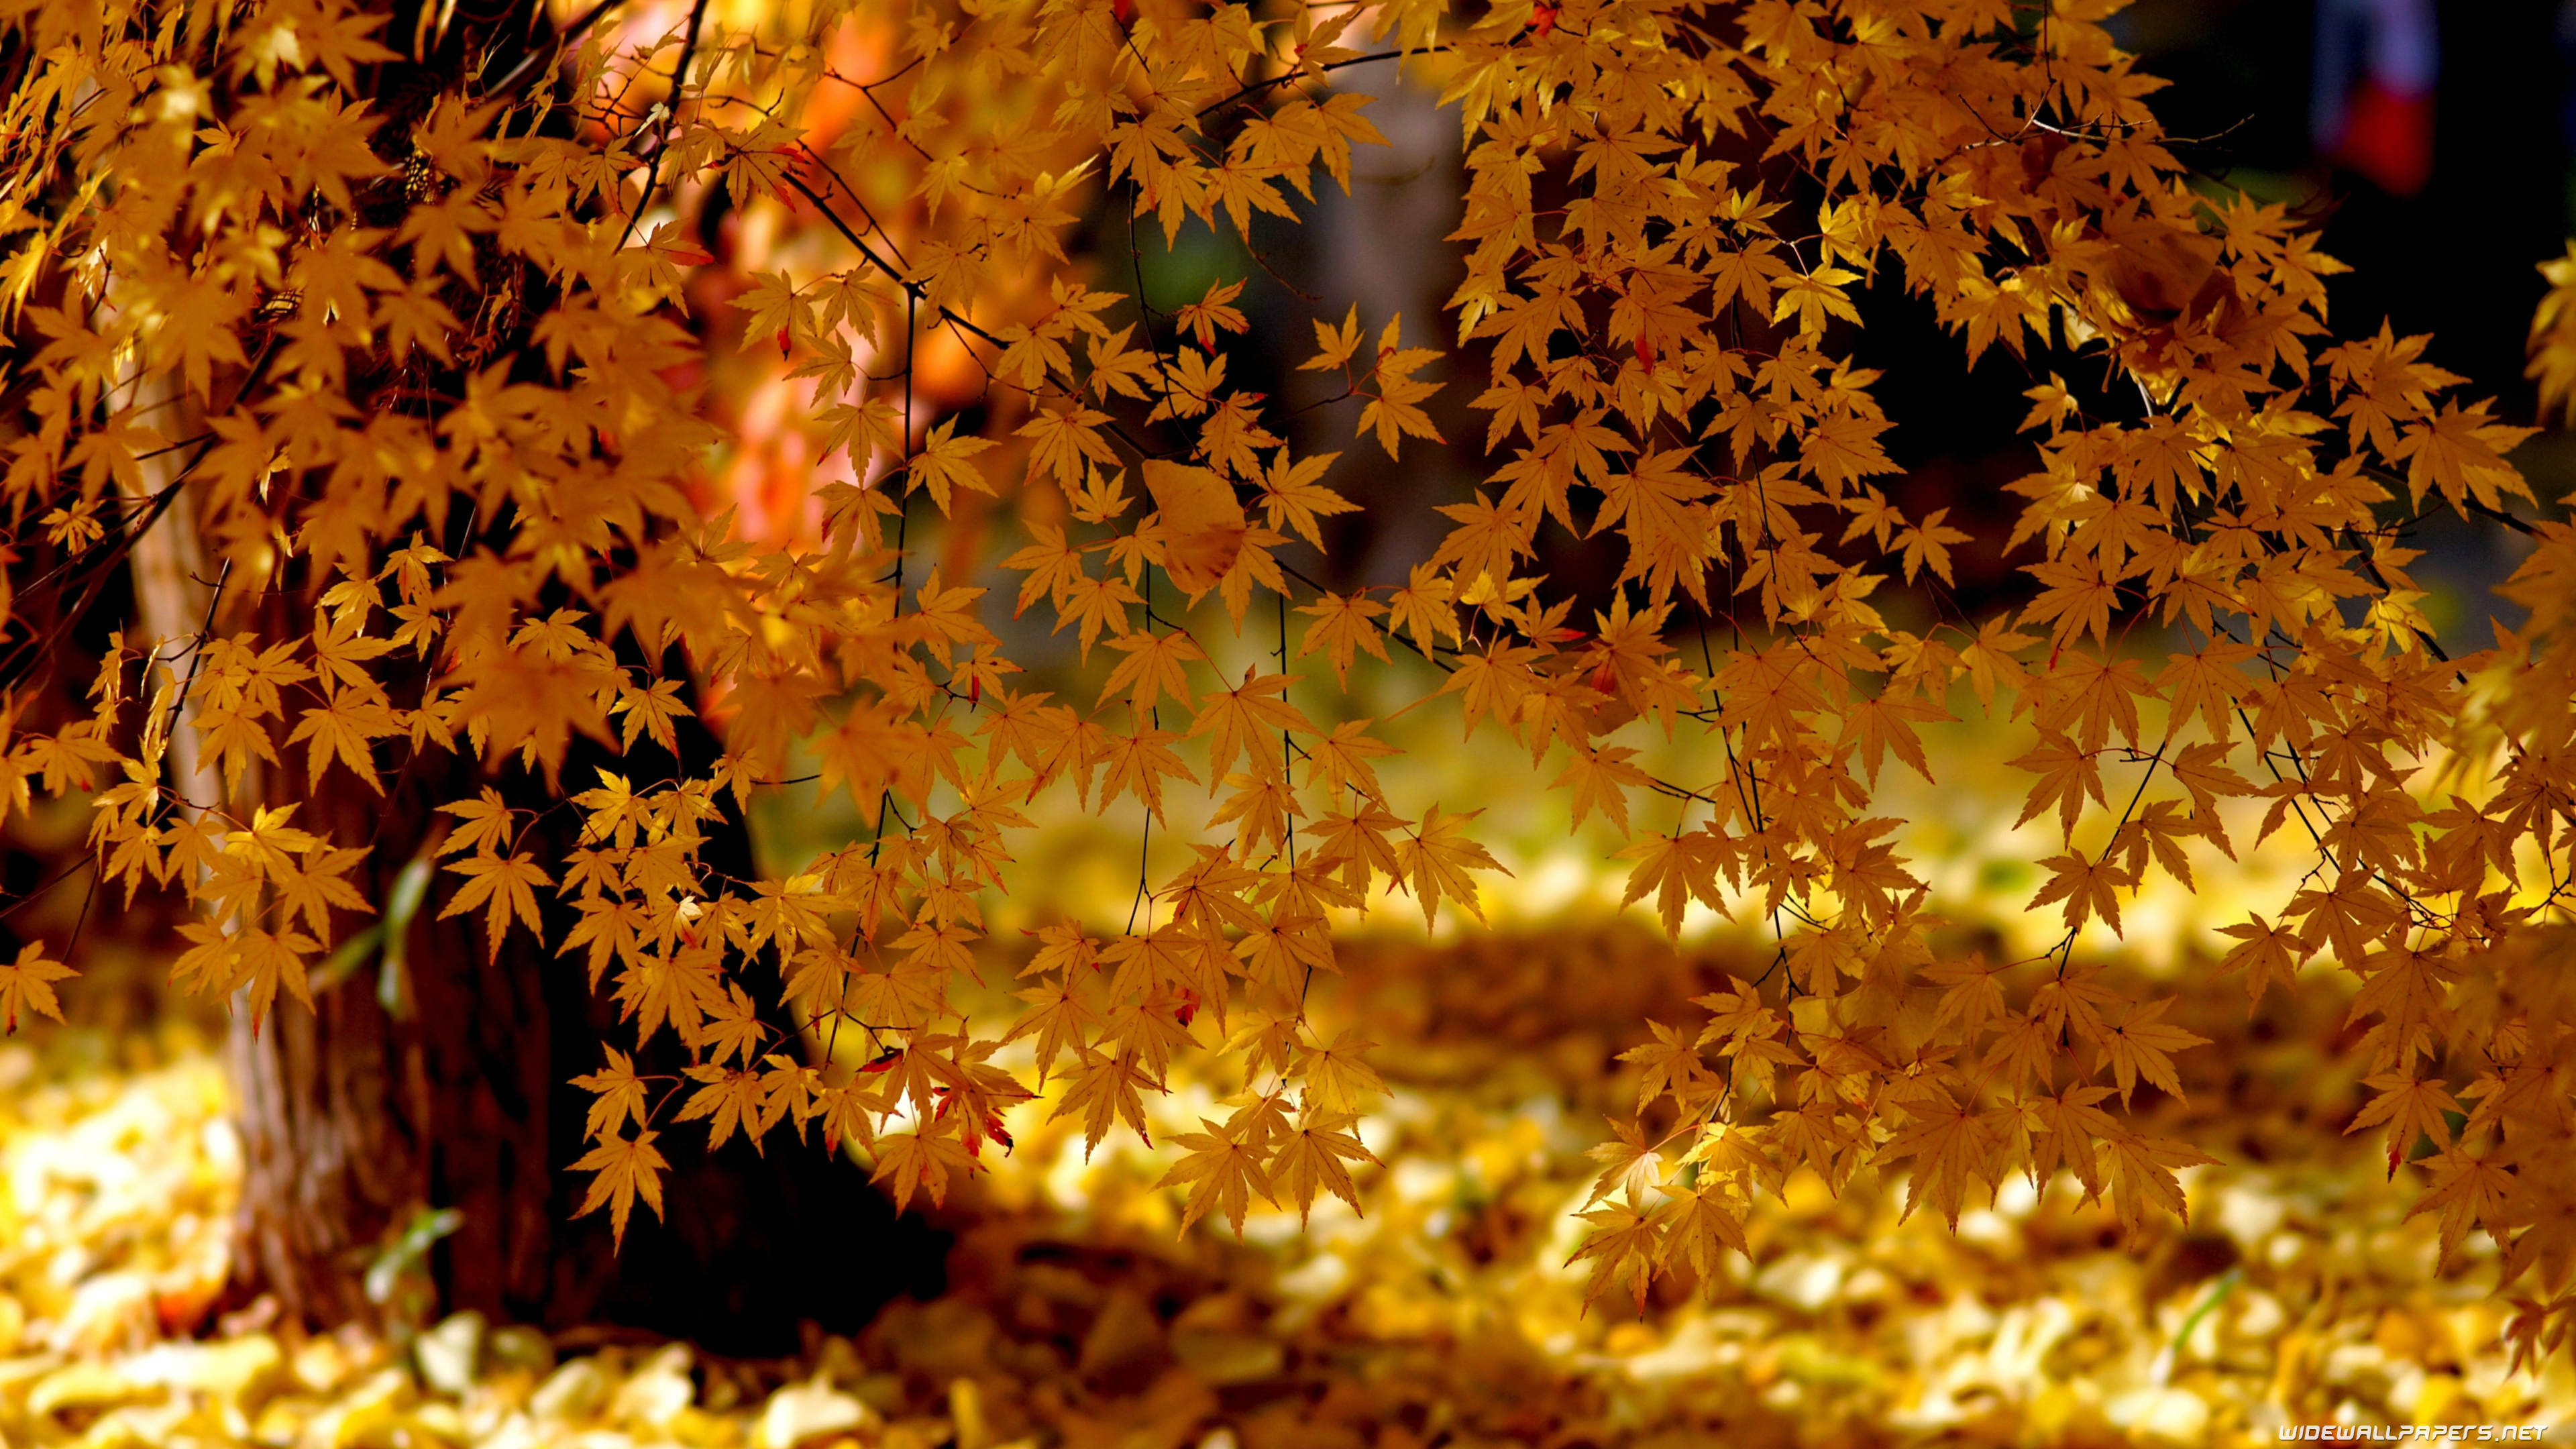 Autumn Wallpapers 4K Ultra HD